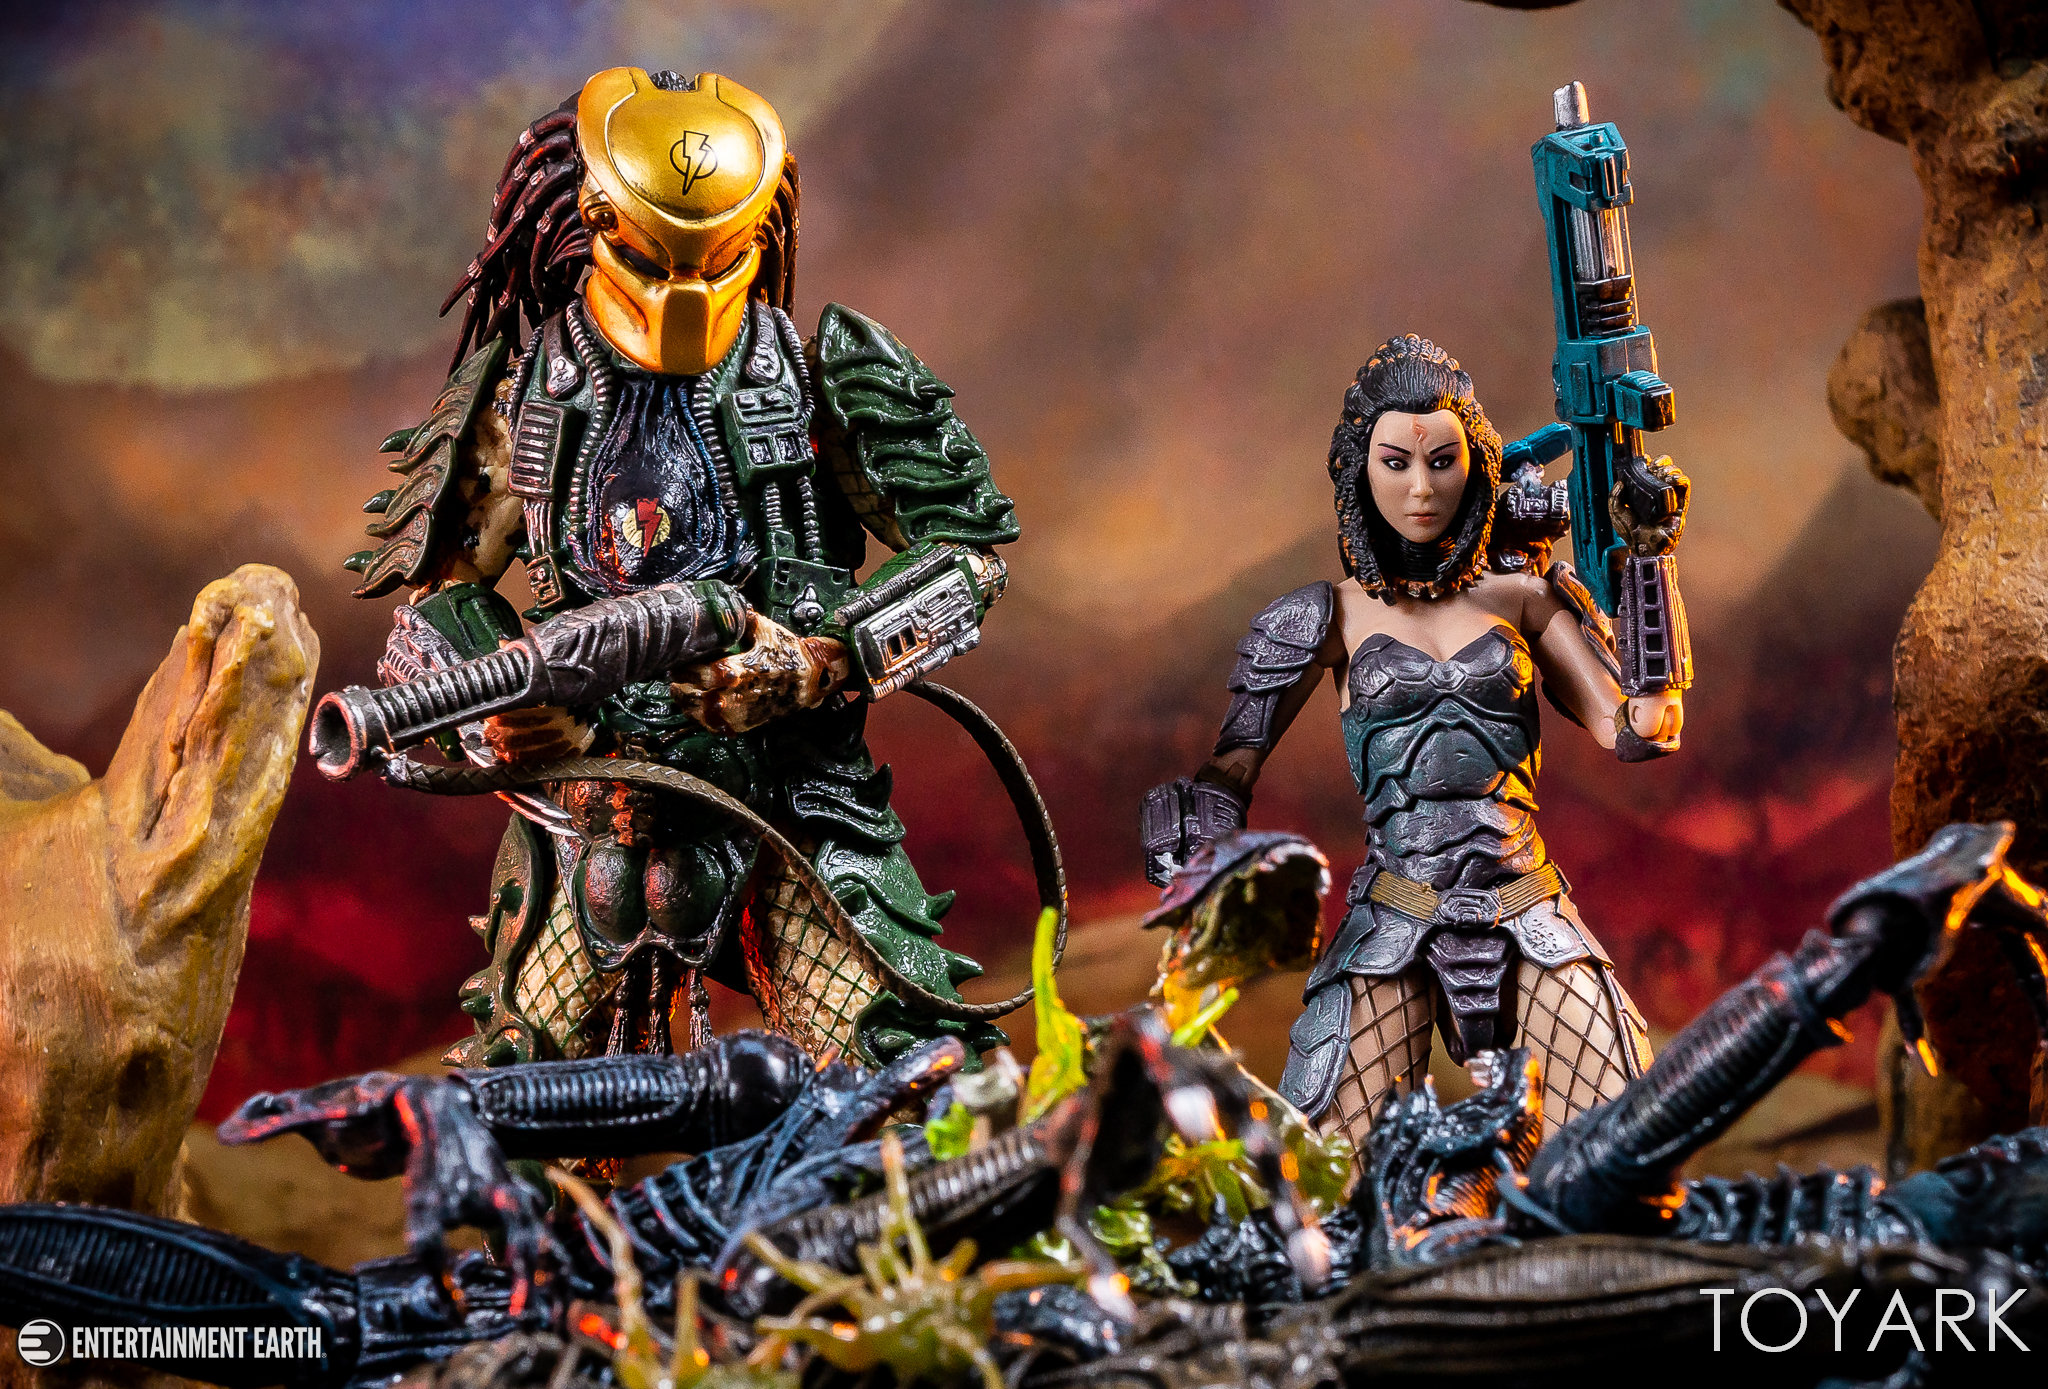 https://news.toyark.com/wp-content/uploads/sites/4/2019/01/Predator-NECA-Series-18-Figures-054.jpg